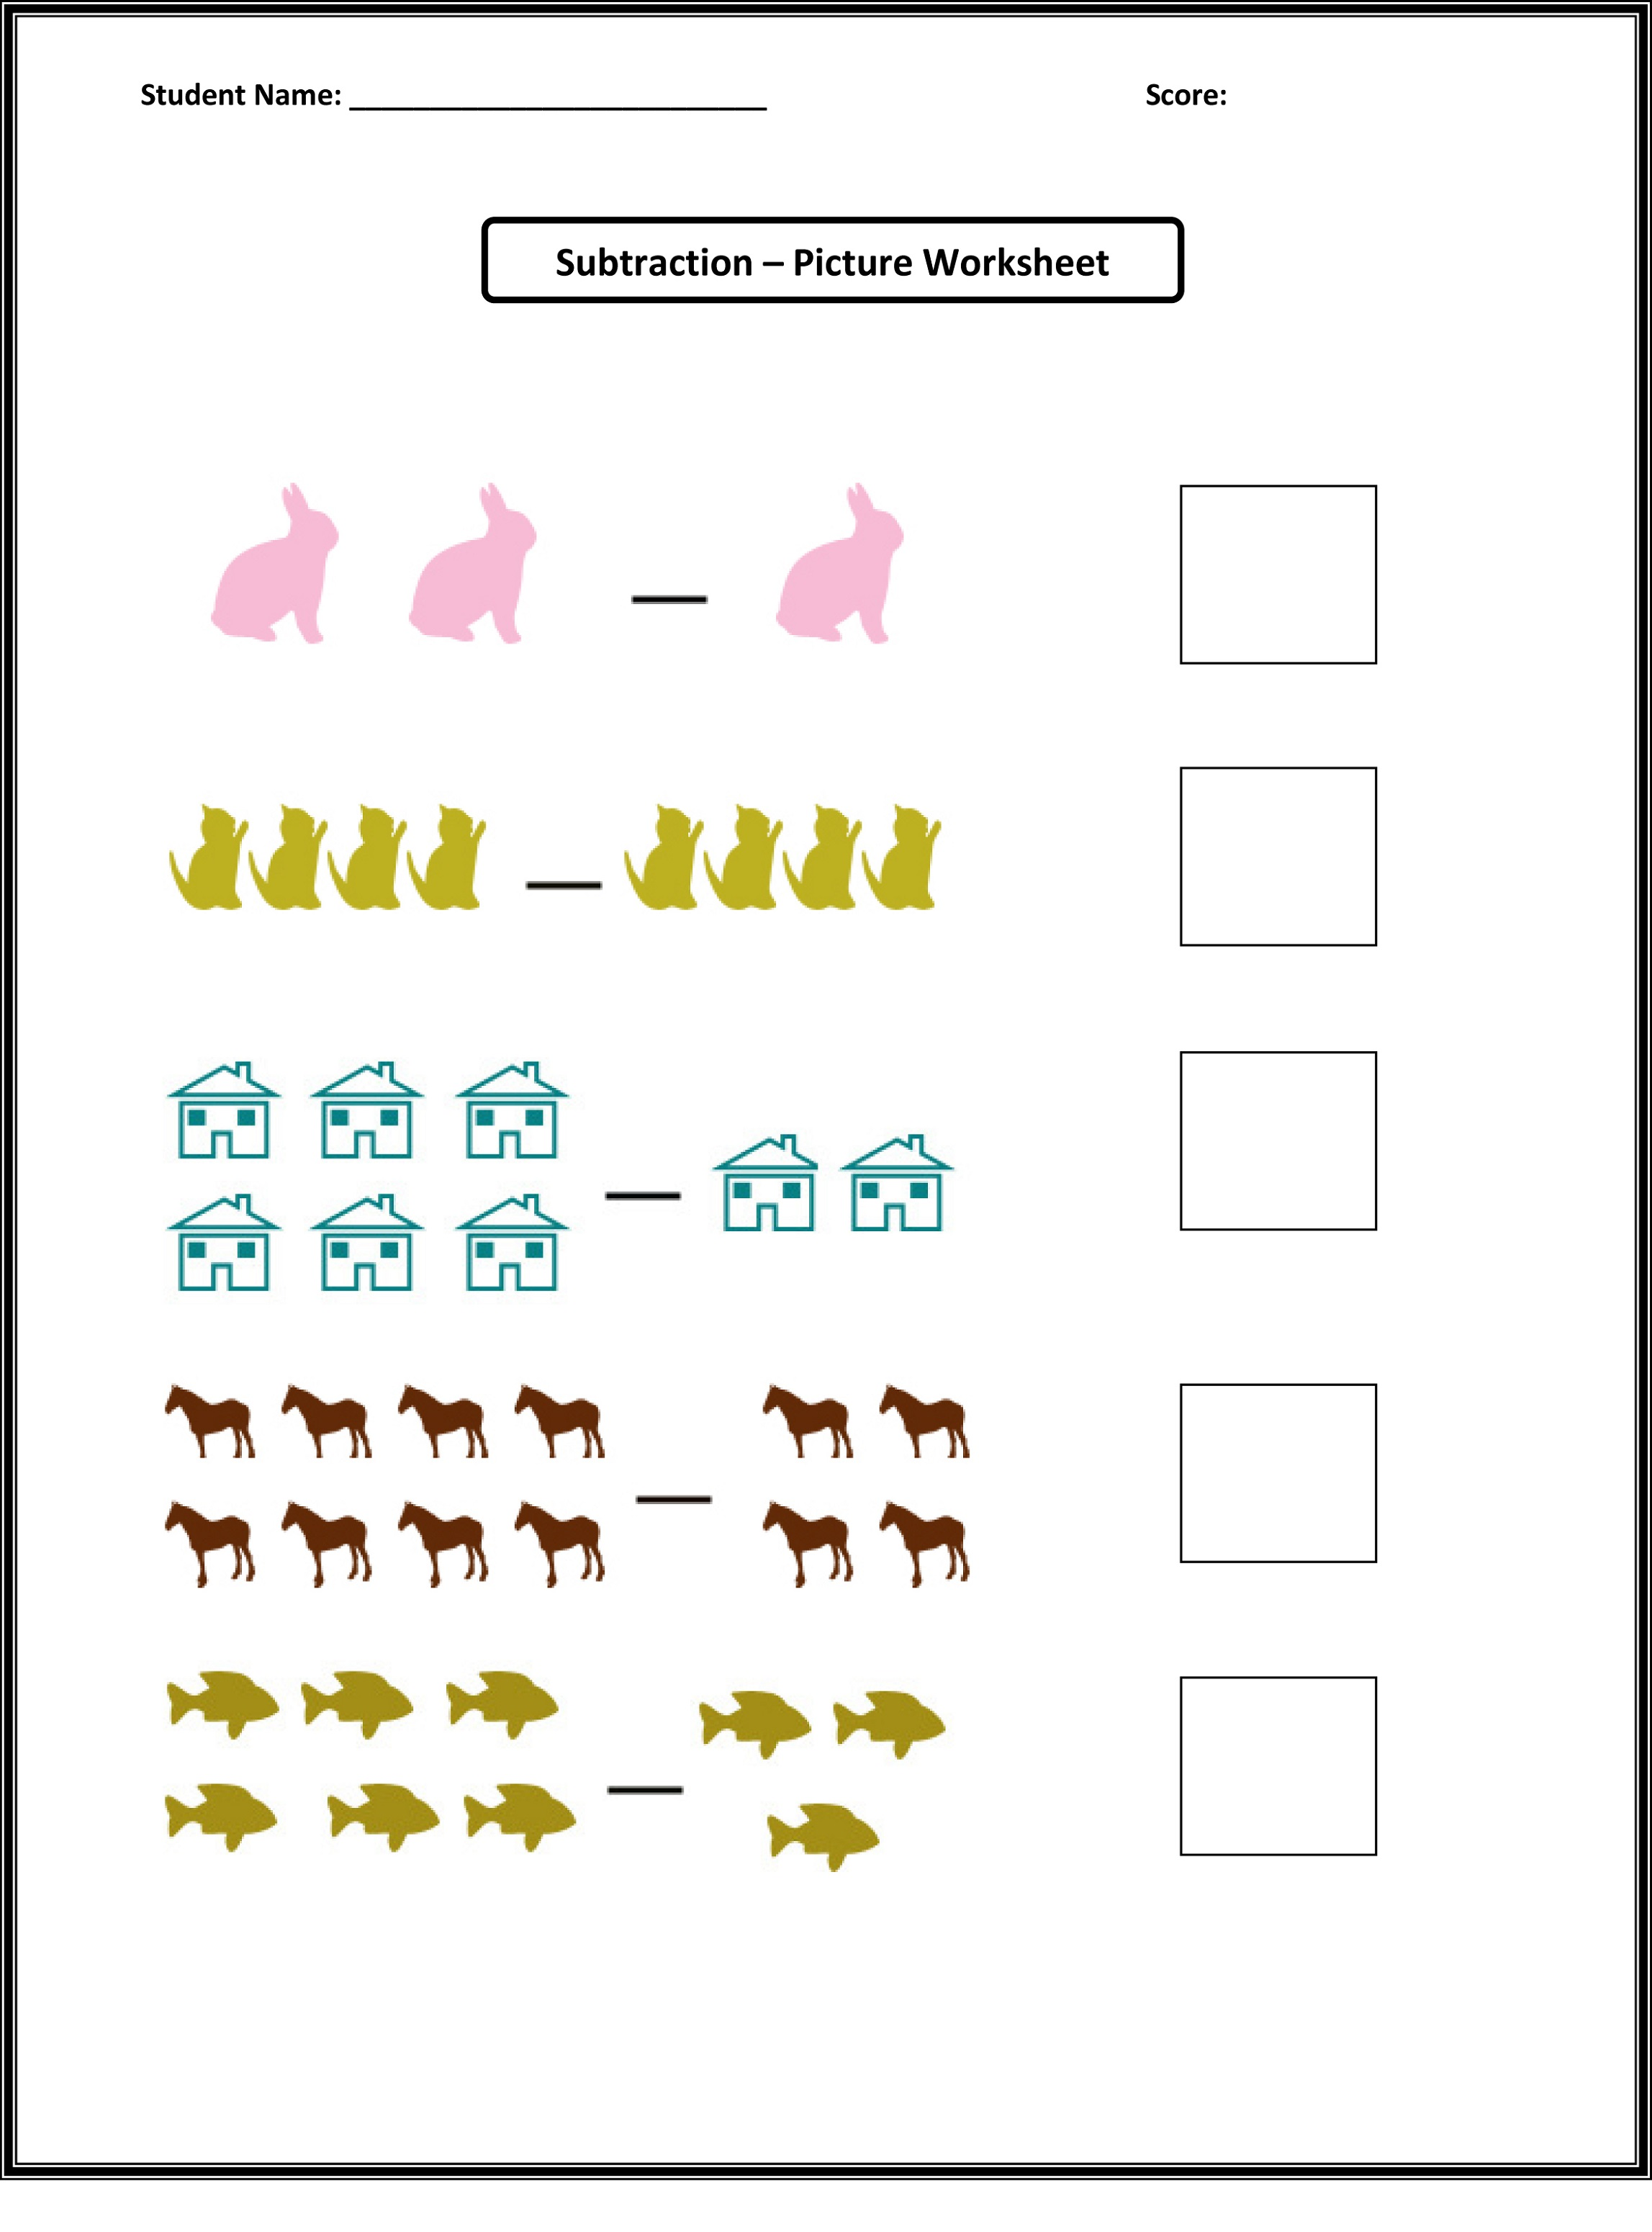 Math Worksheets Images For Kids